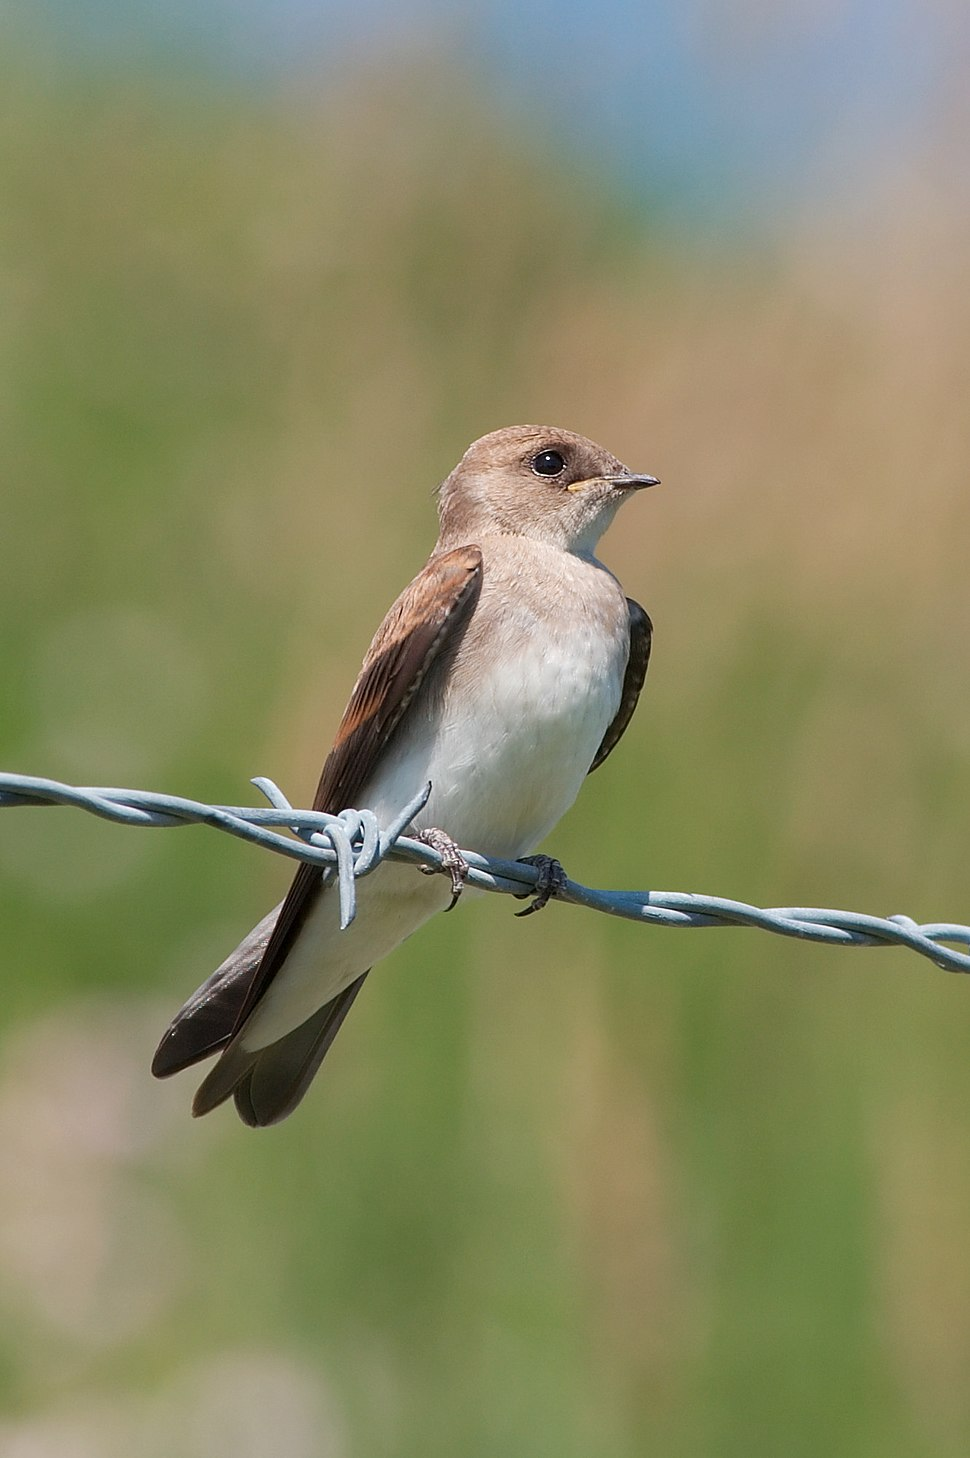 Northern rough-winged swallow 7435